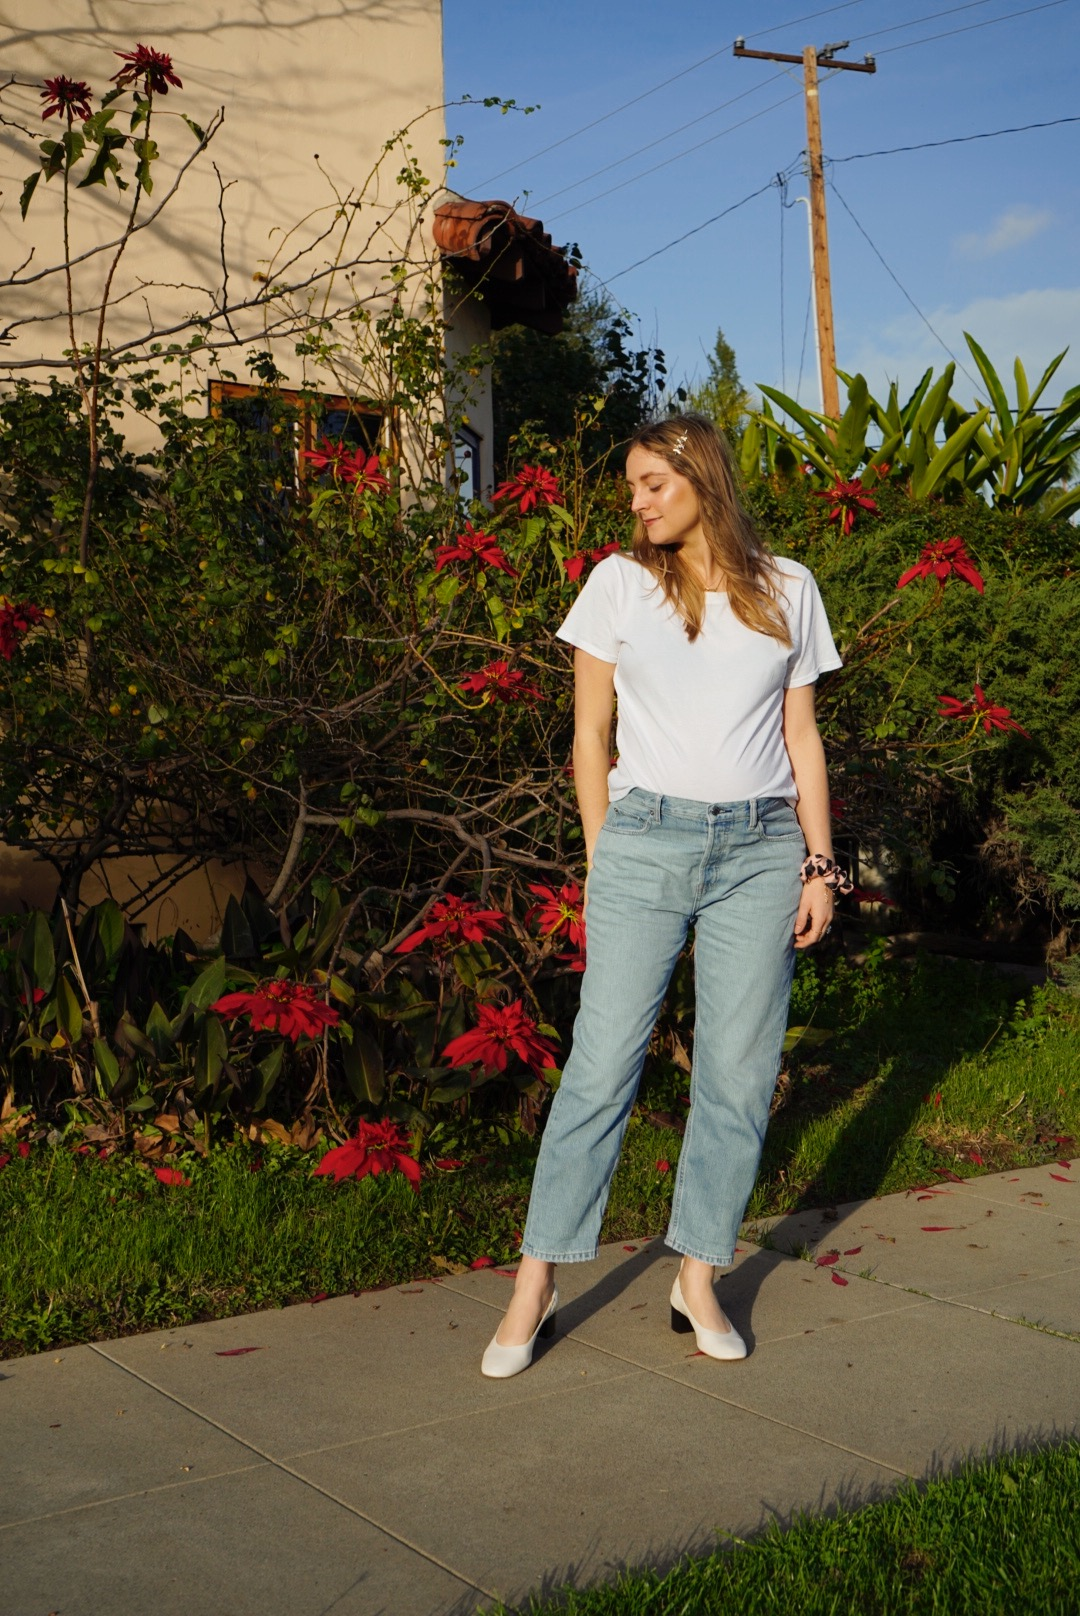 72abca28 I received the Everlane basics kit with The Cotton Box-Cut Tee, The Relaxed  Boyfriend Jean, The Bodysuit and The Day Heel. I instantly feel in love  with how ...